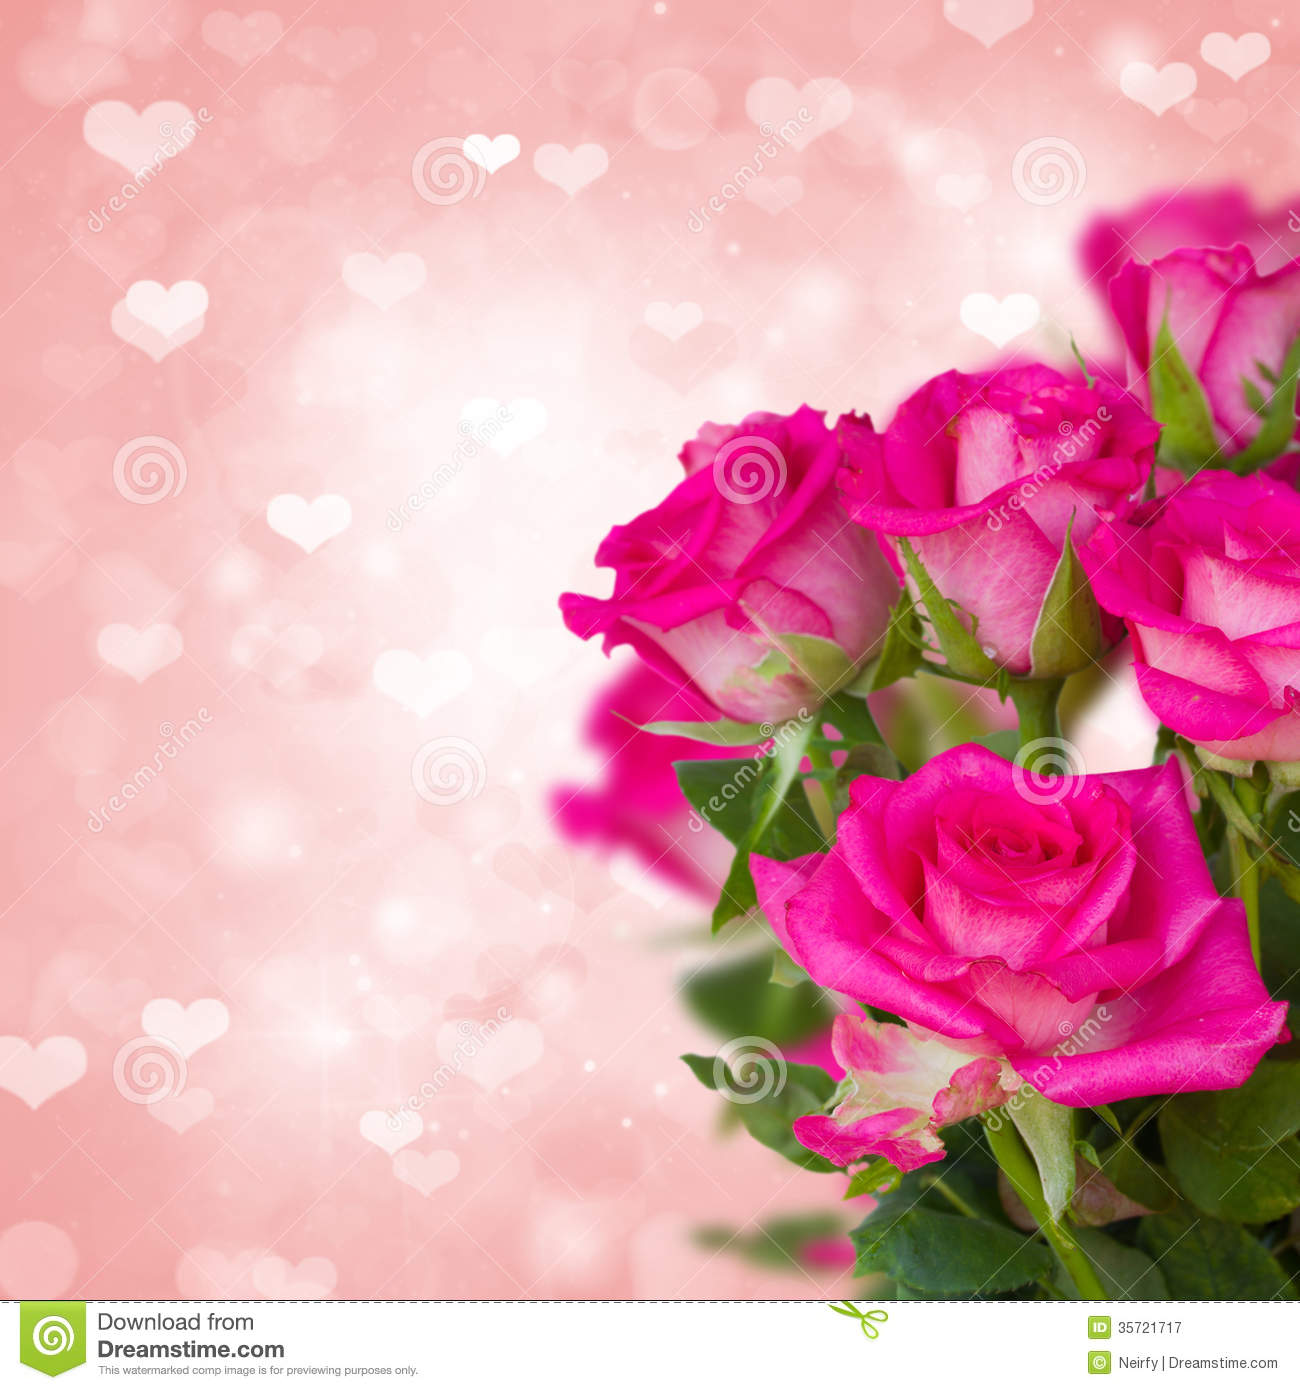 Pink roses on background with hearts royalty free stock - Pink roses and hearts wallpaper ...